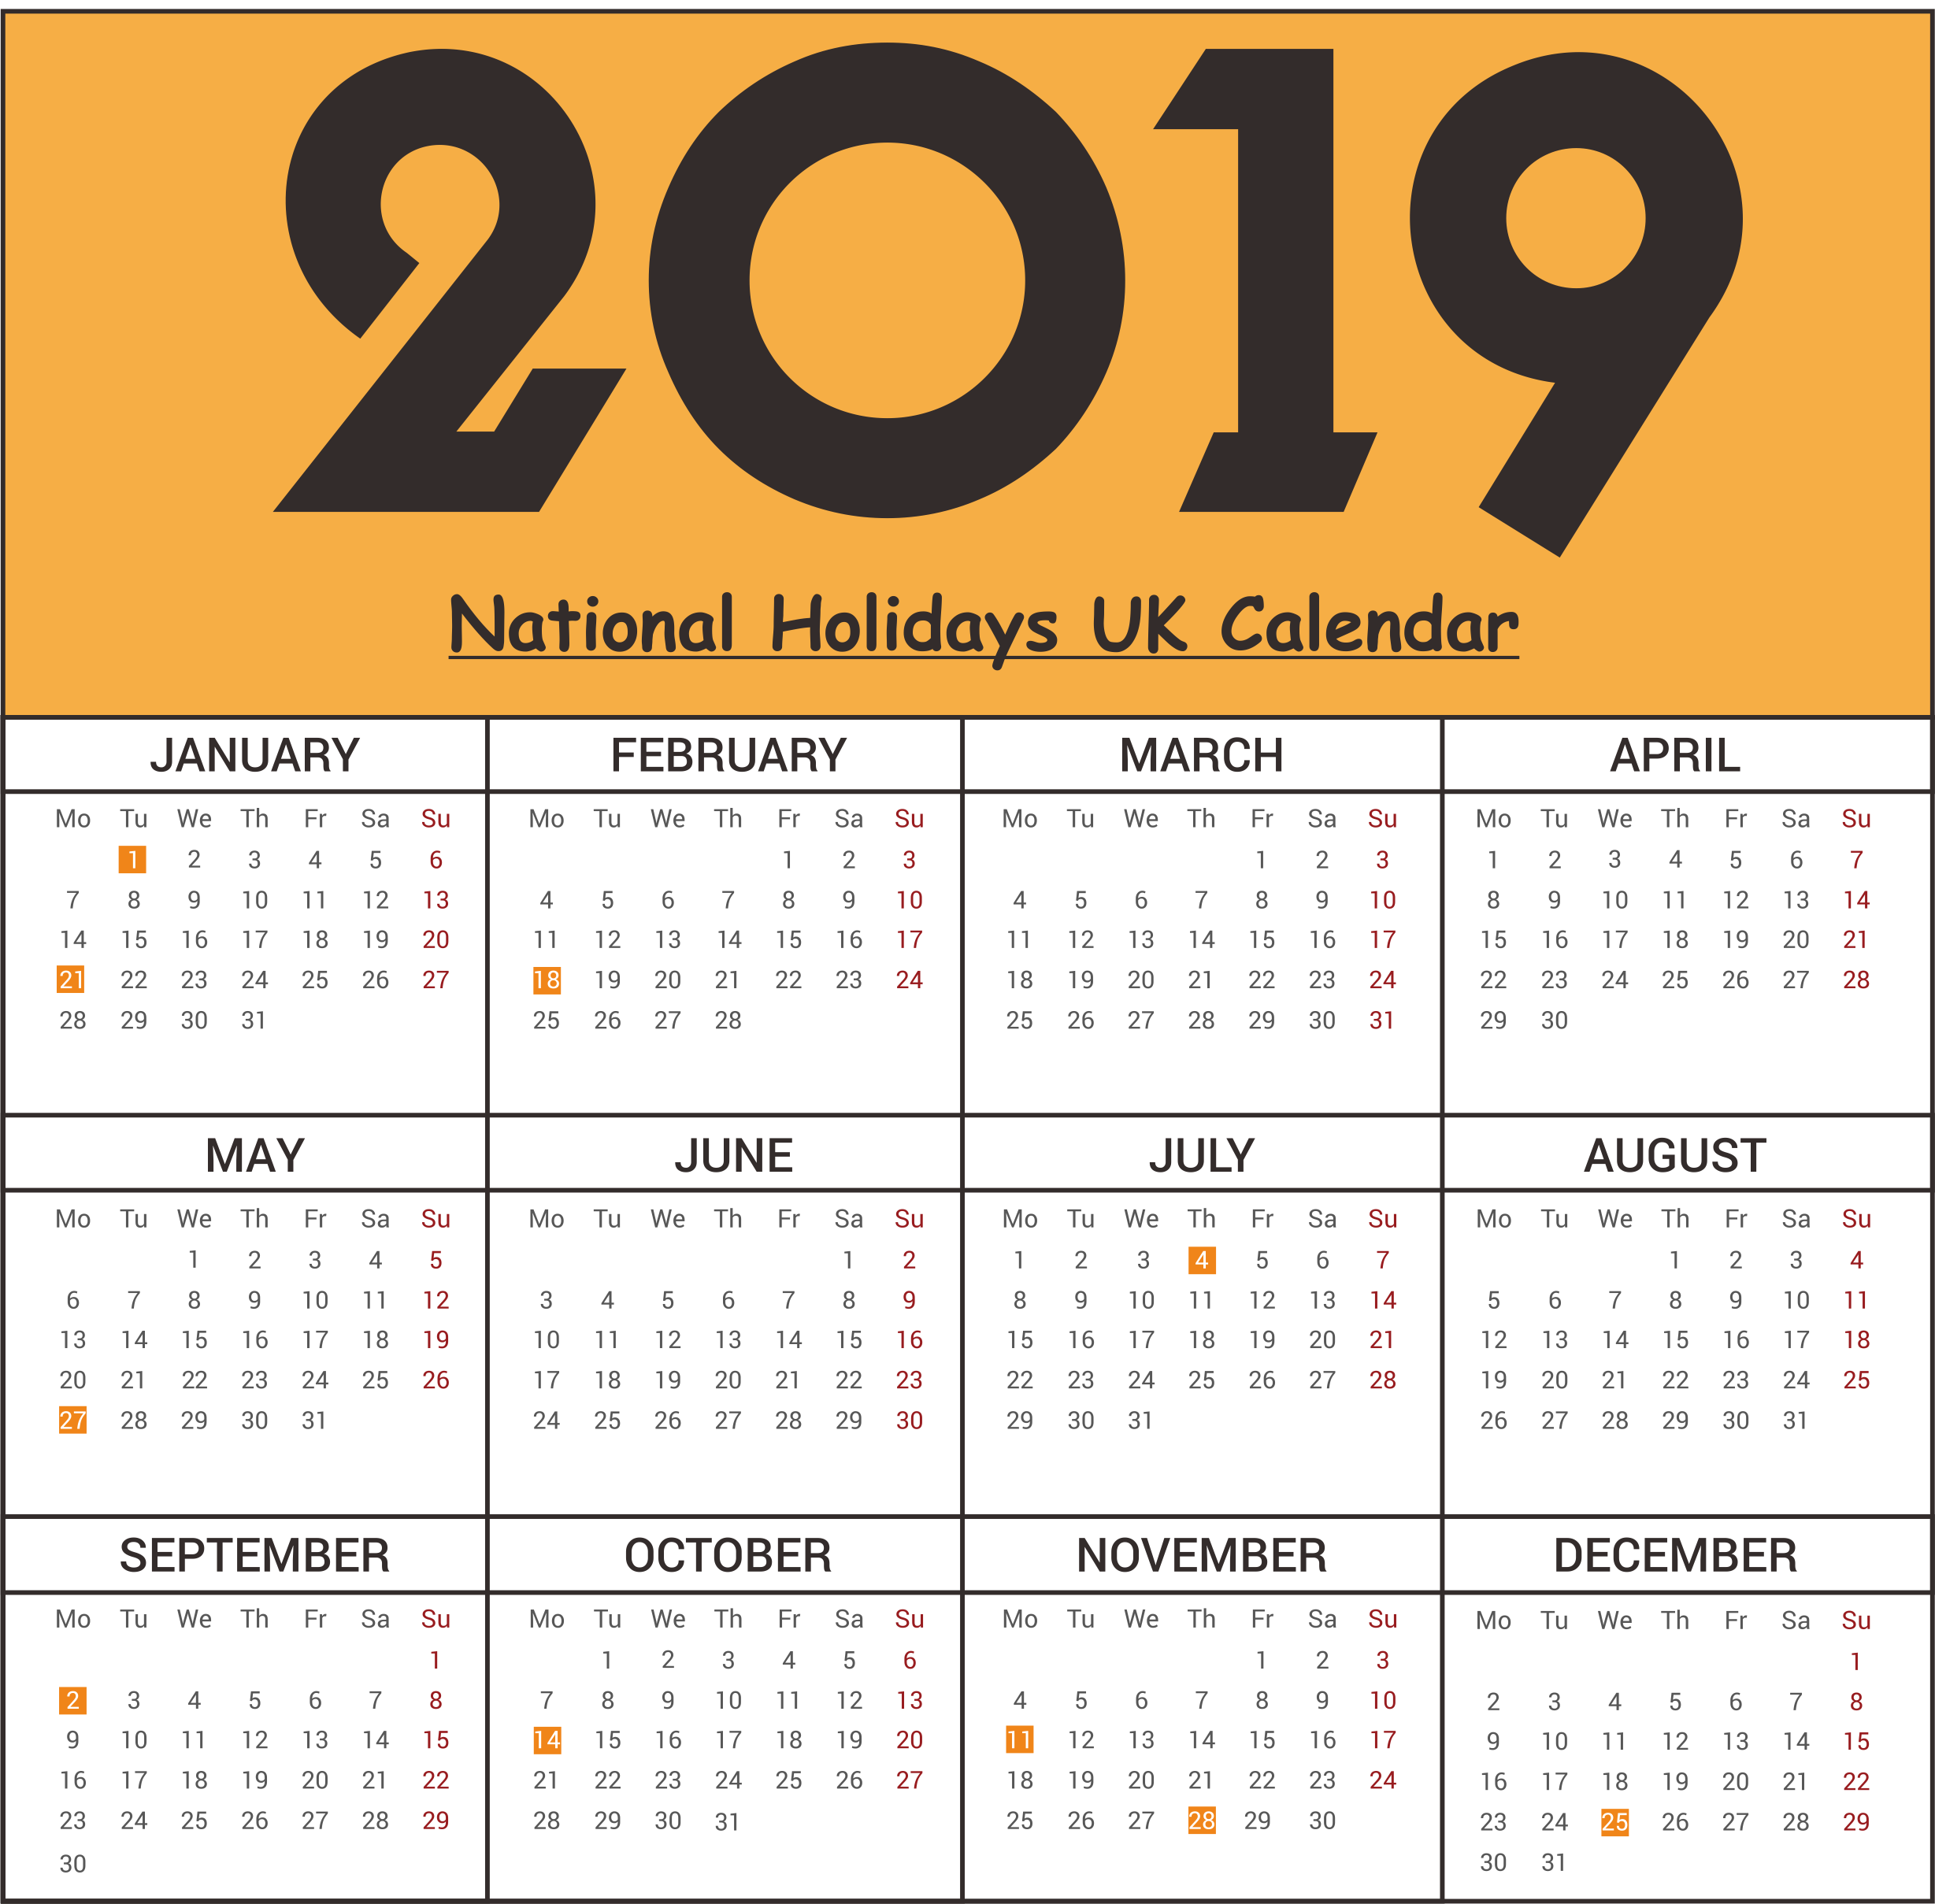 National Holidays 2019 UK